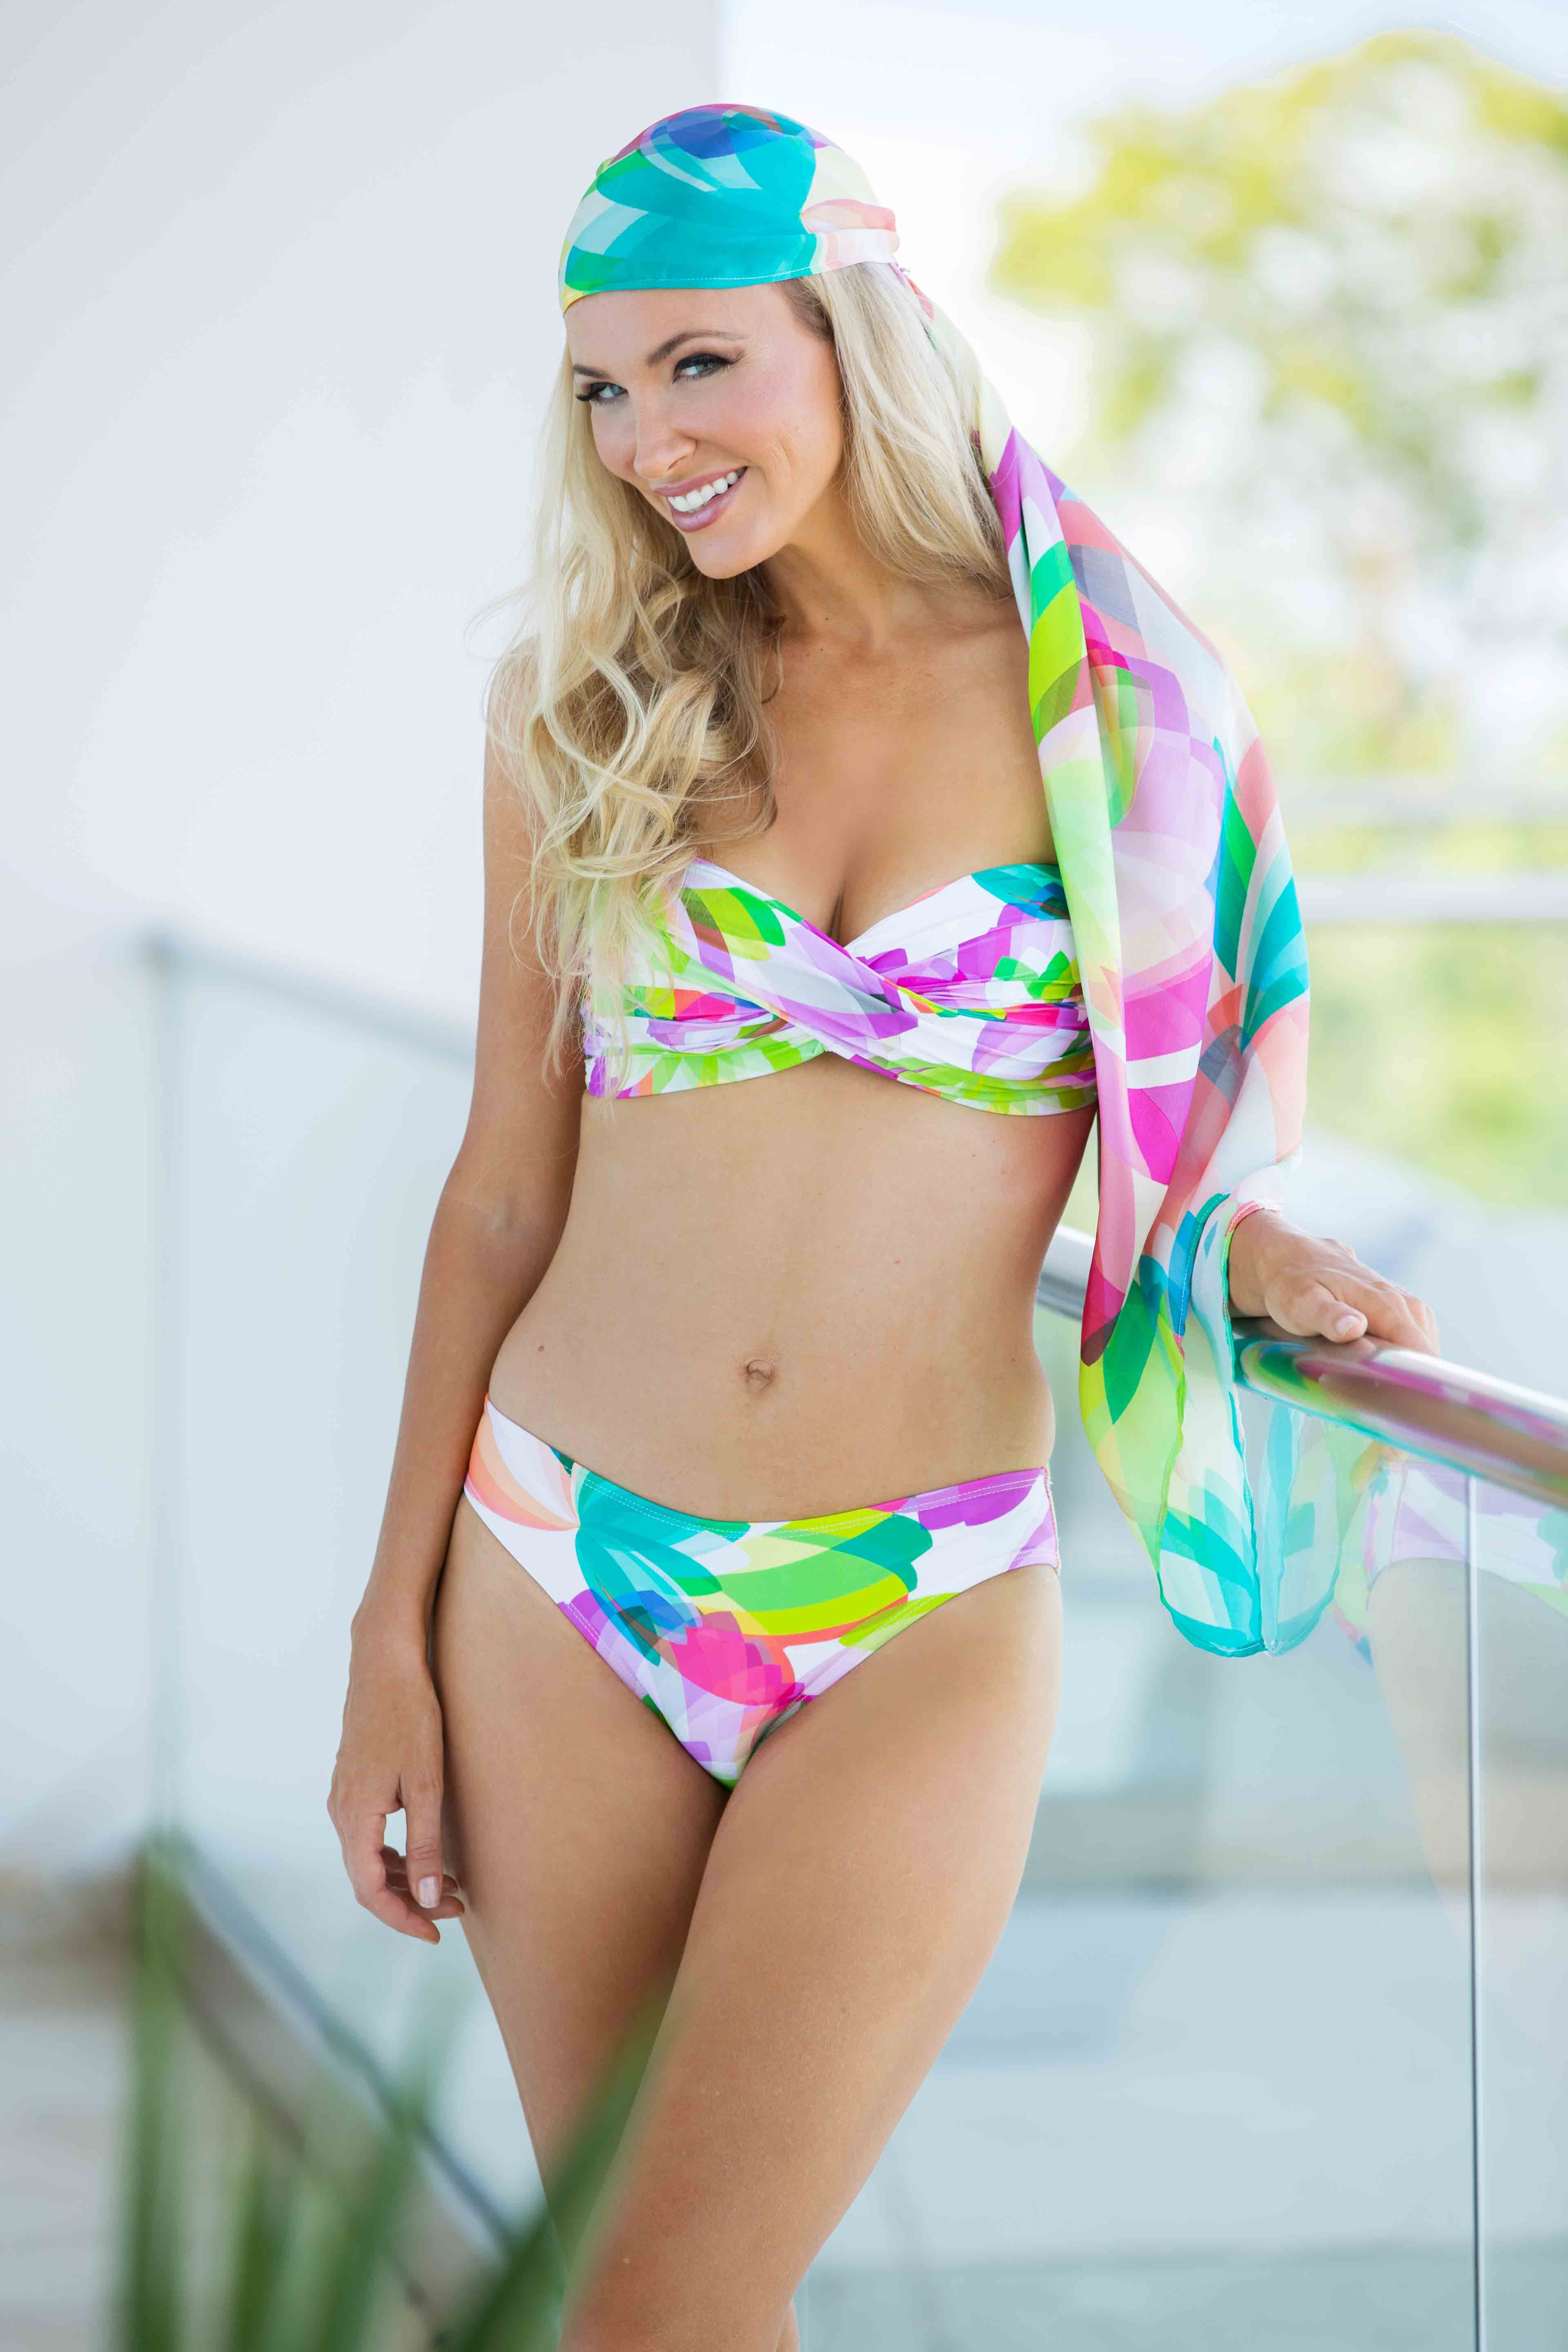 418ddc8f184eb Tara Grinna Swimwear now has head wraps to match our beautiful swimsuits! Shop  today at taragrinna.com.